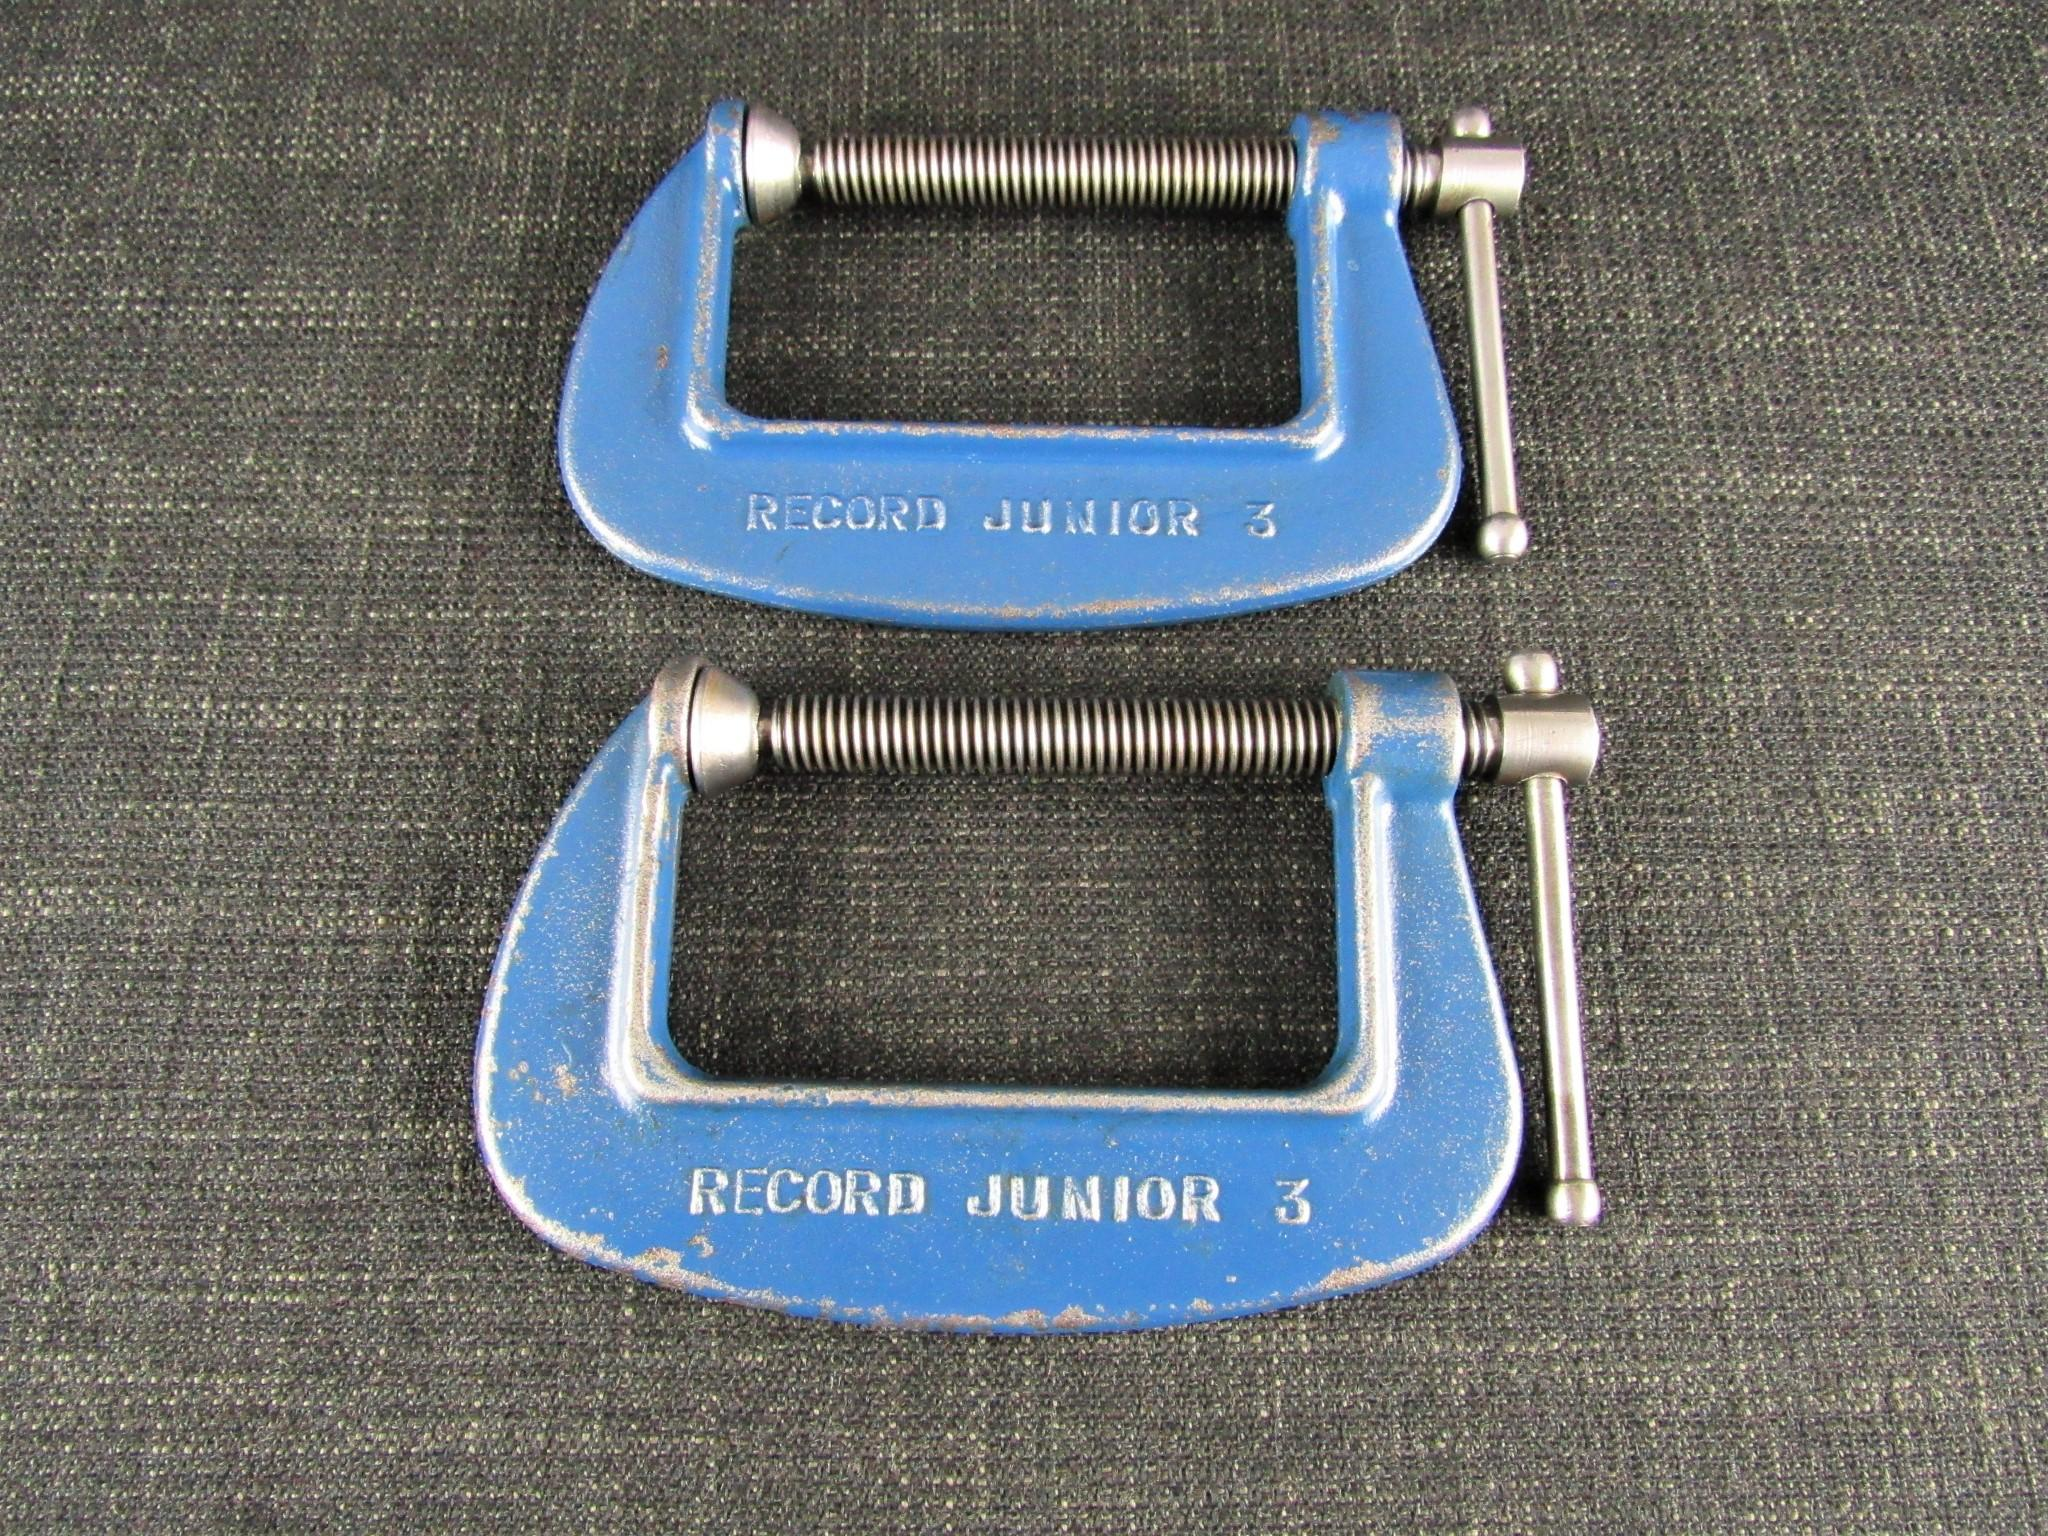 Pair of 3 inch RECORD Junior G Clamps